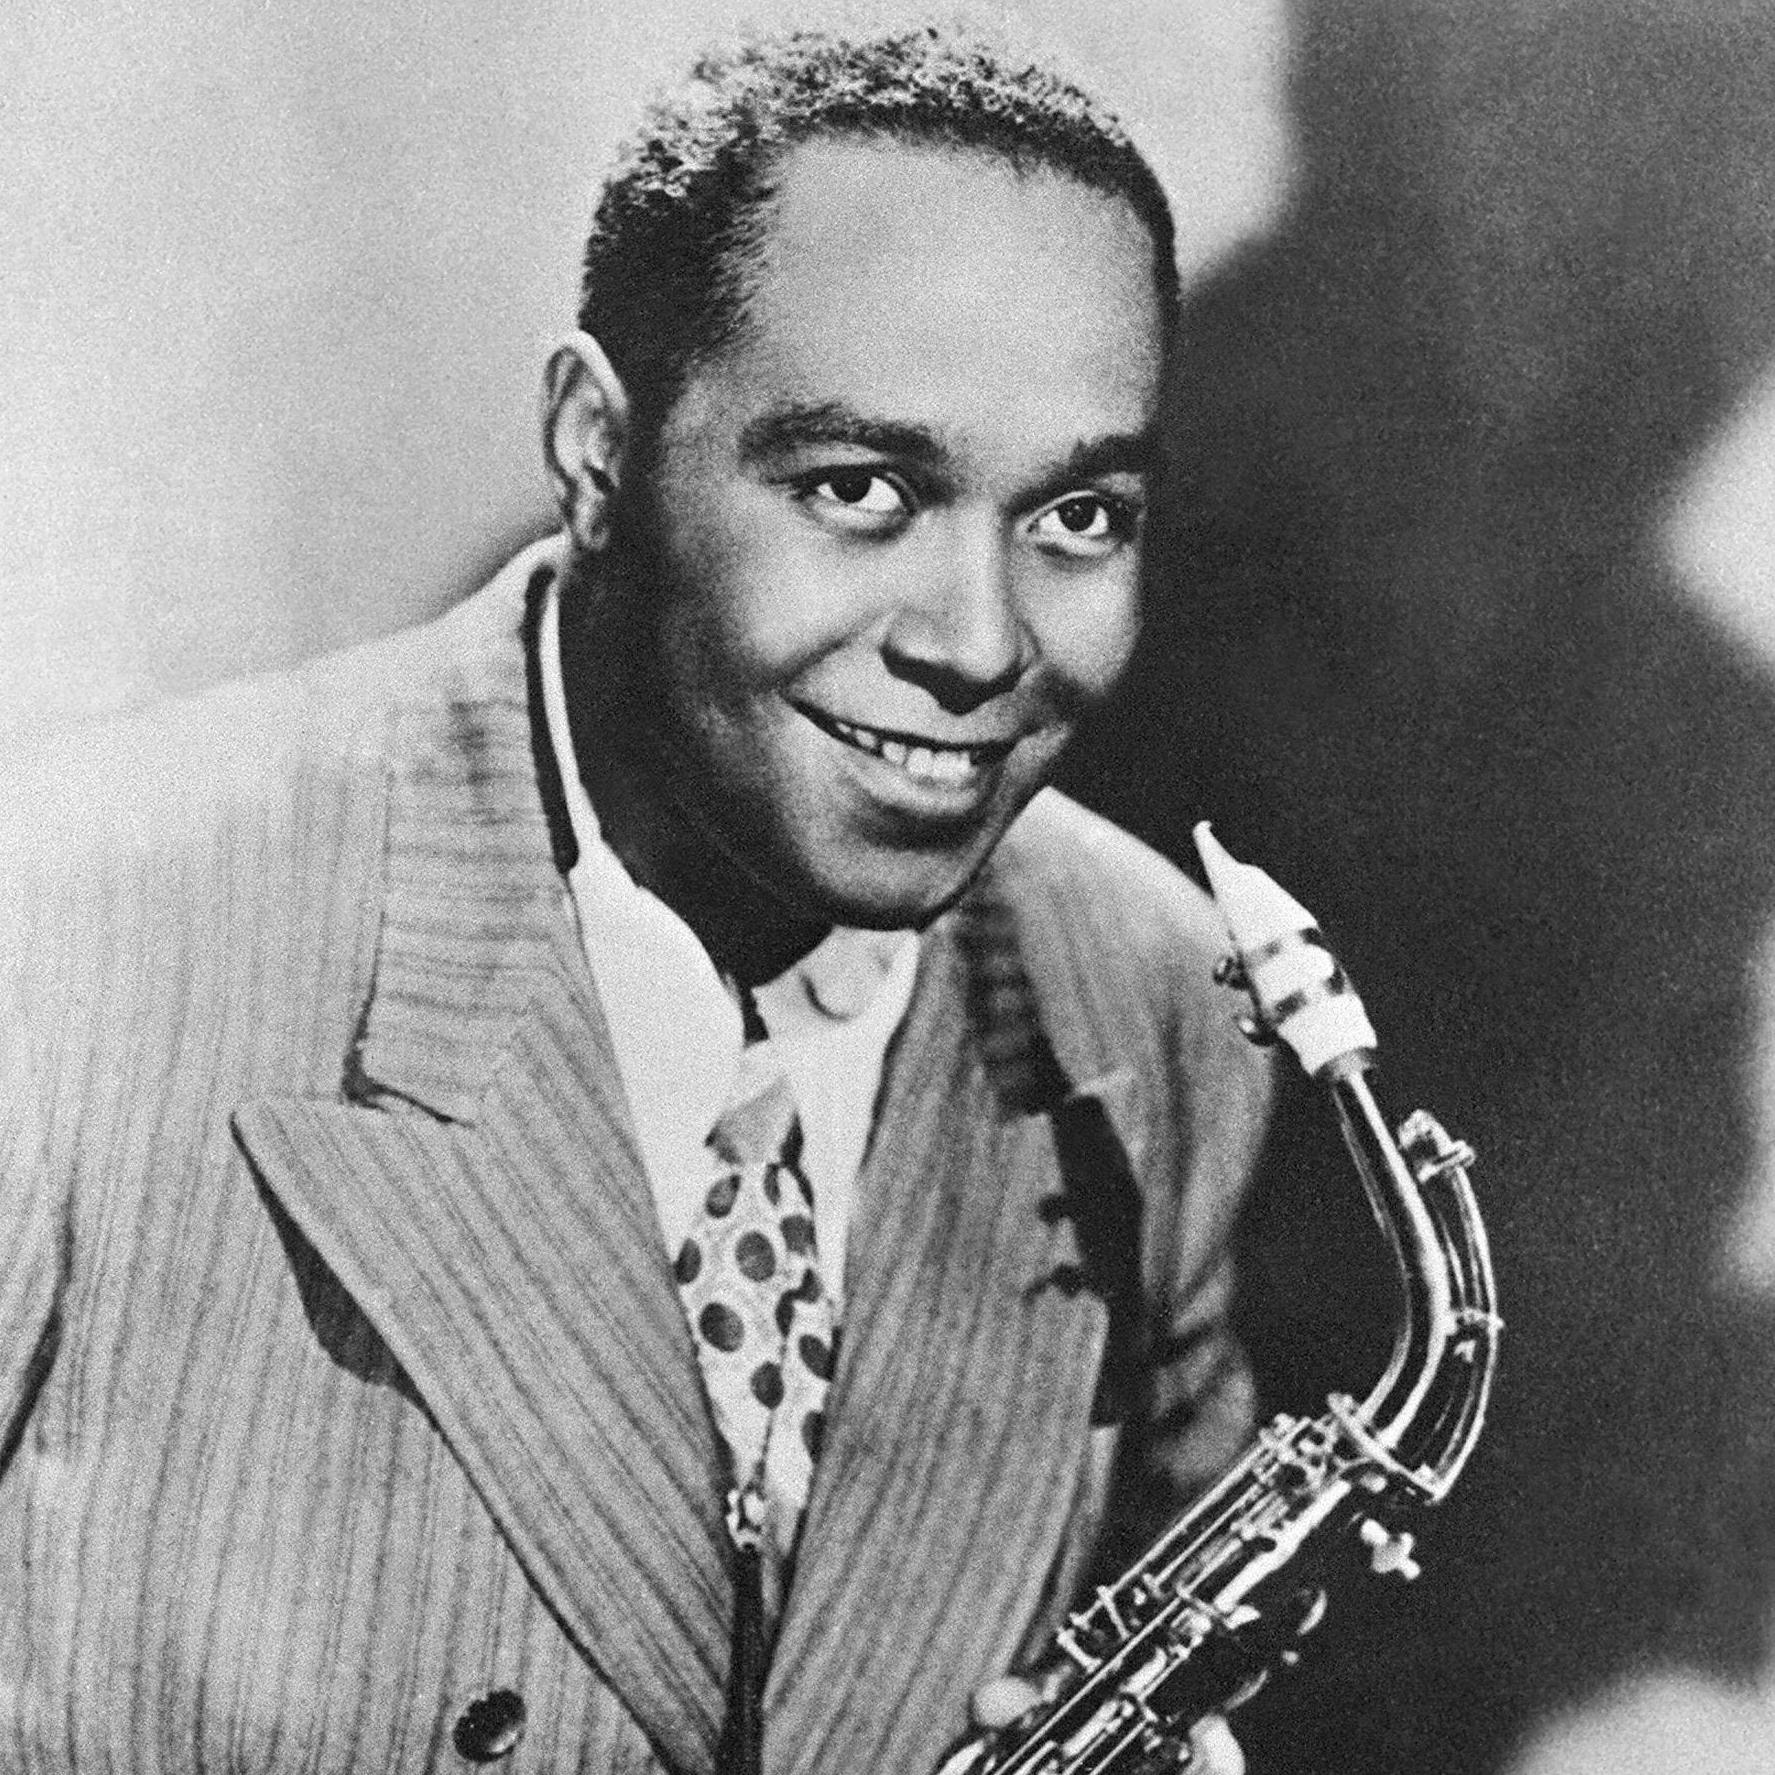 Charlie Parker, shown here in an undated photo, was a legendary jazz saxophonist.